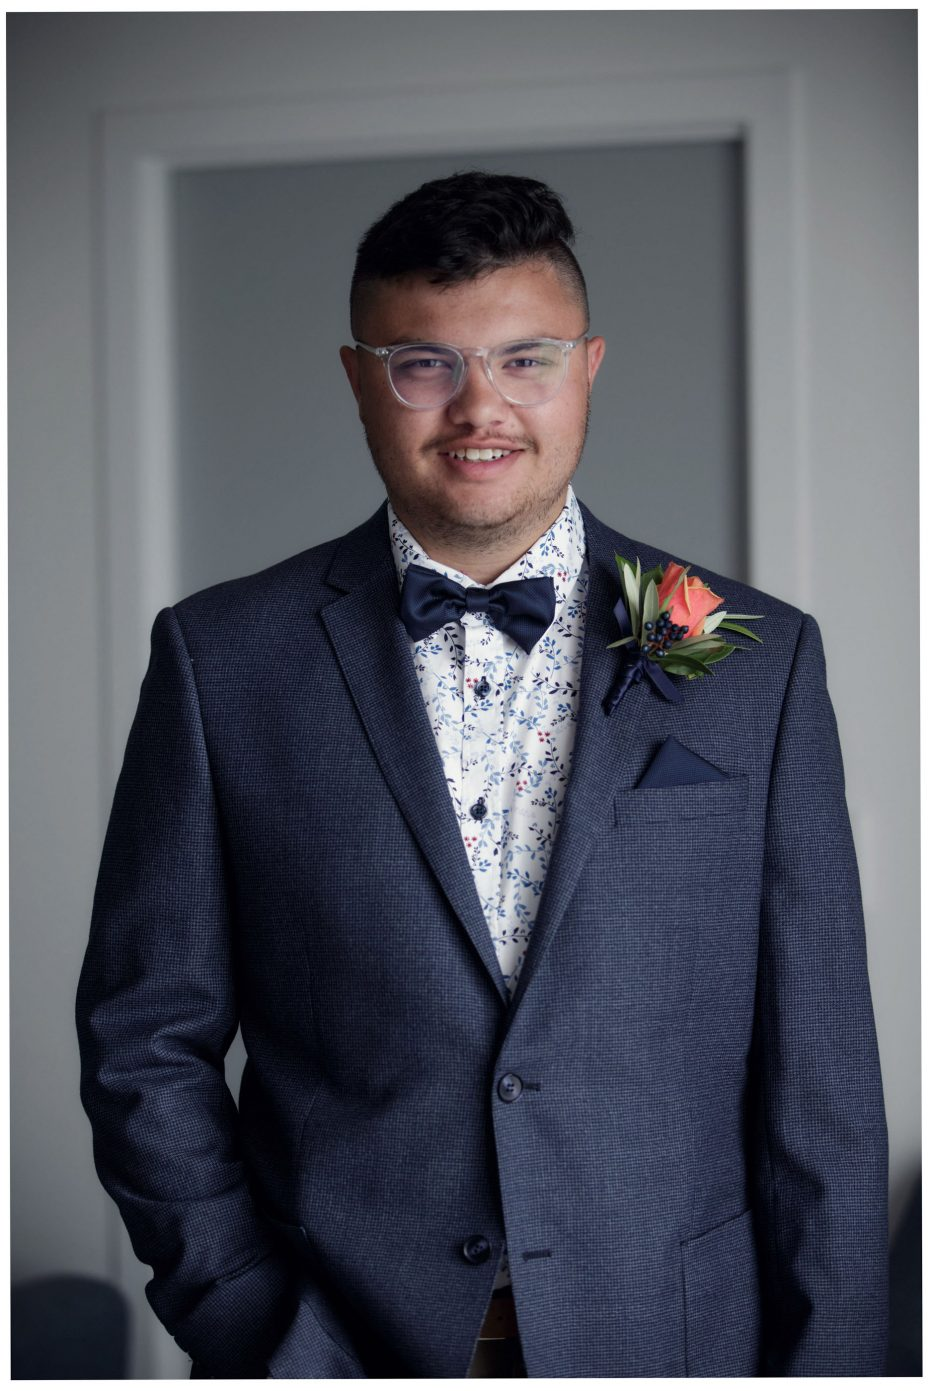 Bridegroom dressed in suit and bow tie ready to go.